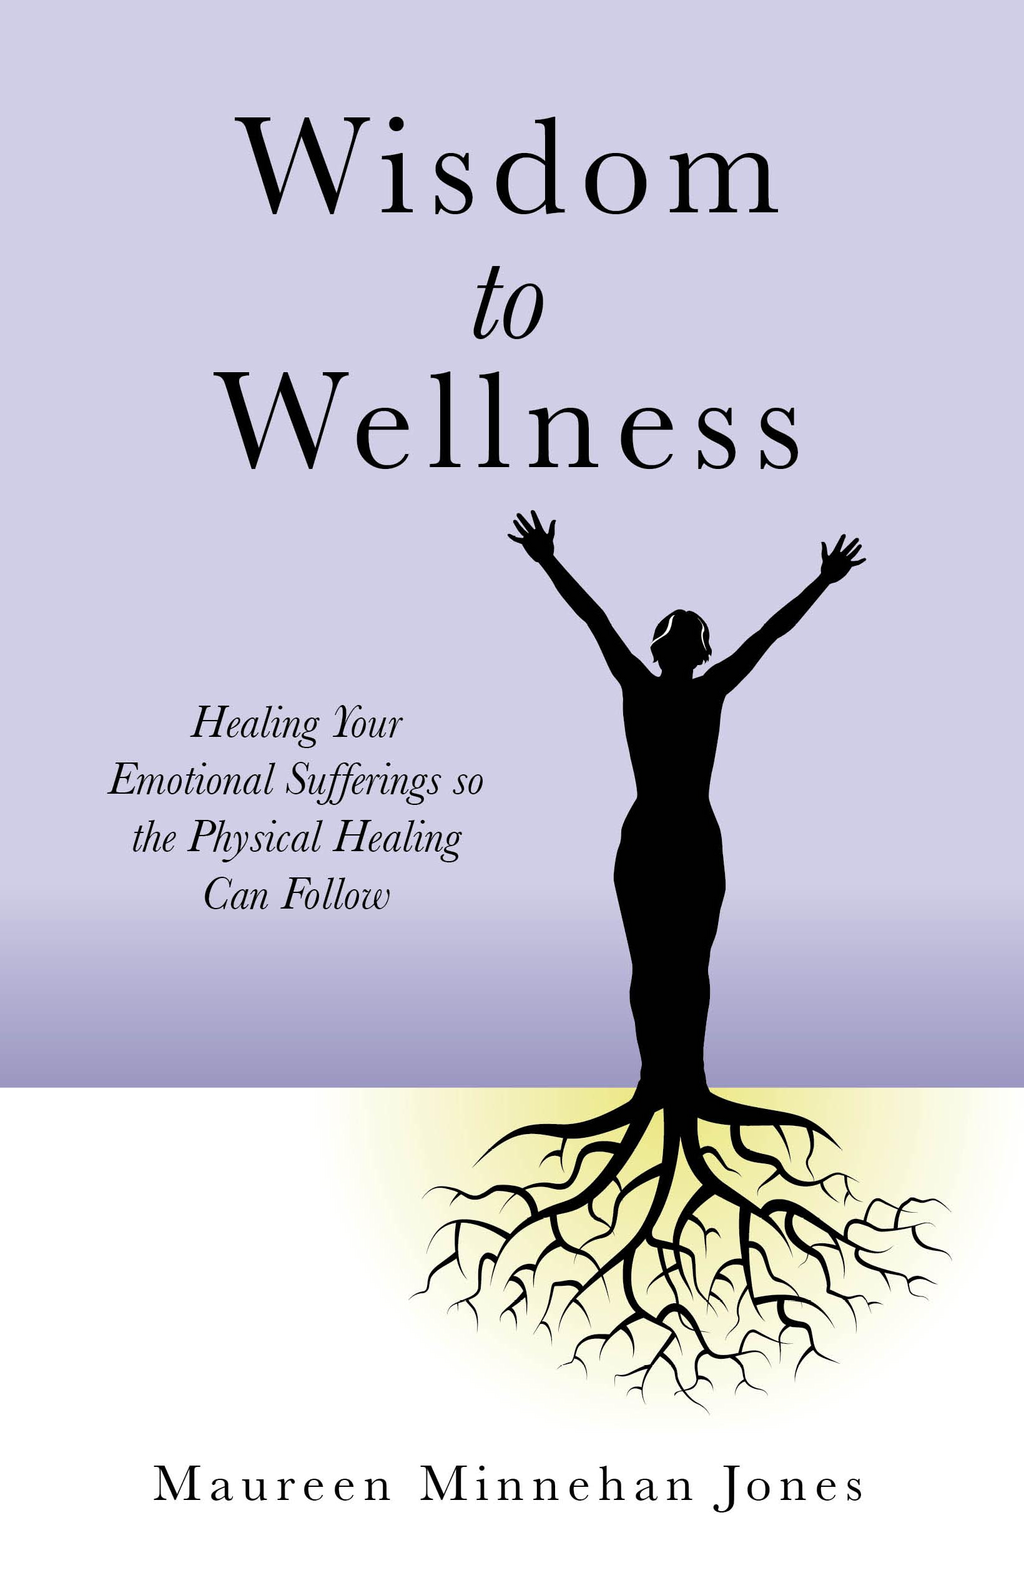 Wisdom to Wellness: Healing Your Emotional Sufferings so the Physical Healing Can Follow